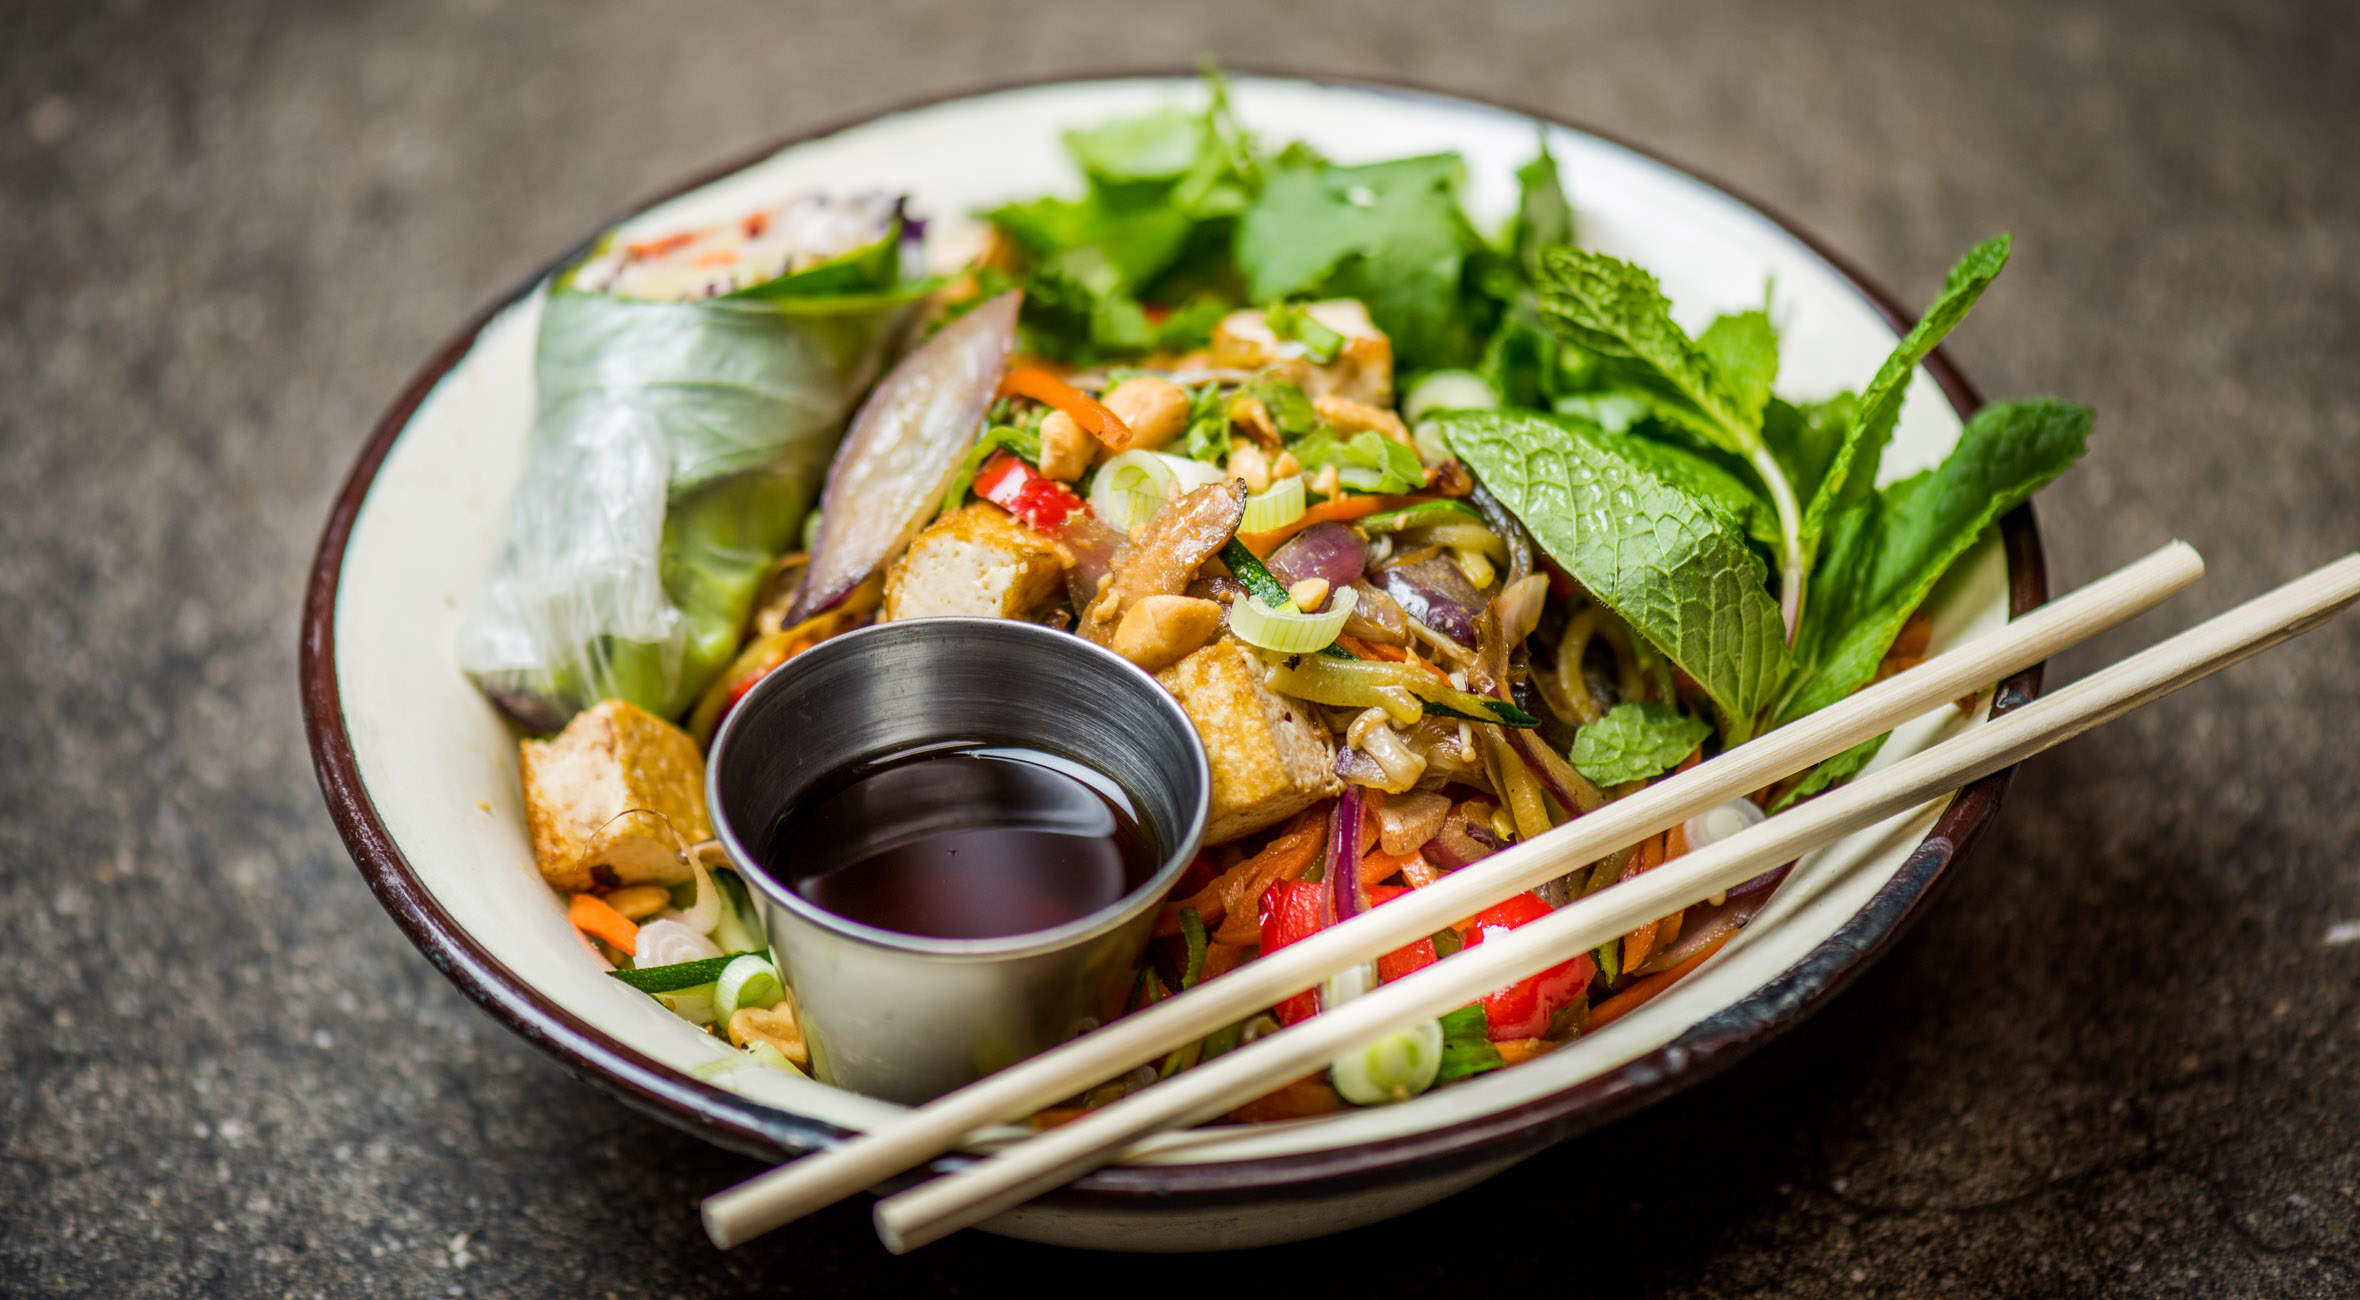 Two-Course Menu for 2 Persons at BòCàPhê – Taste the Amazing Vietnamese Kitchen in Soho